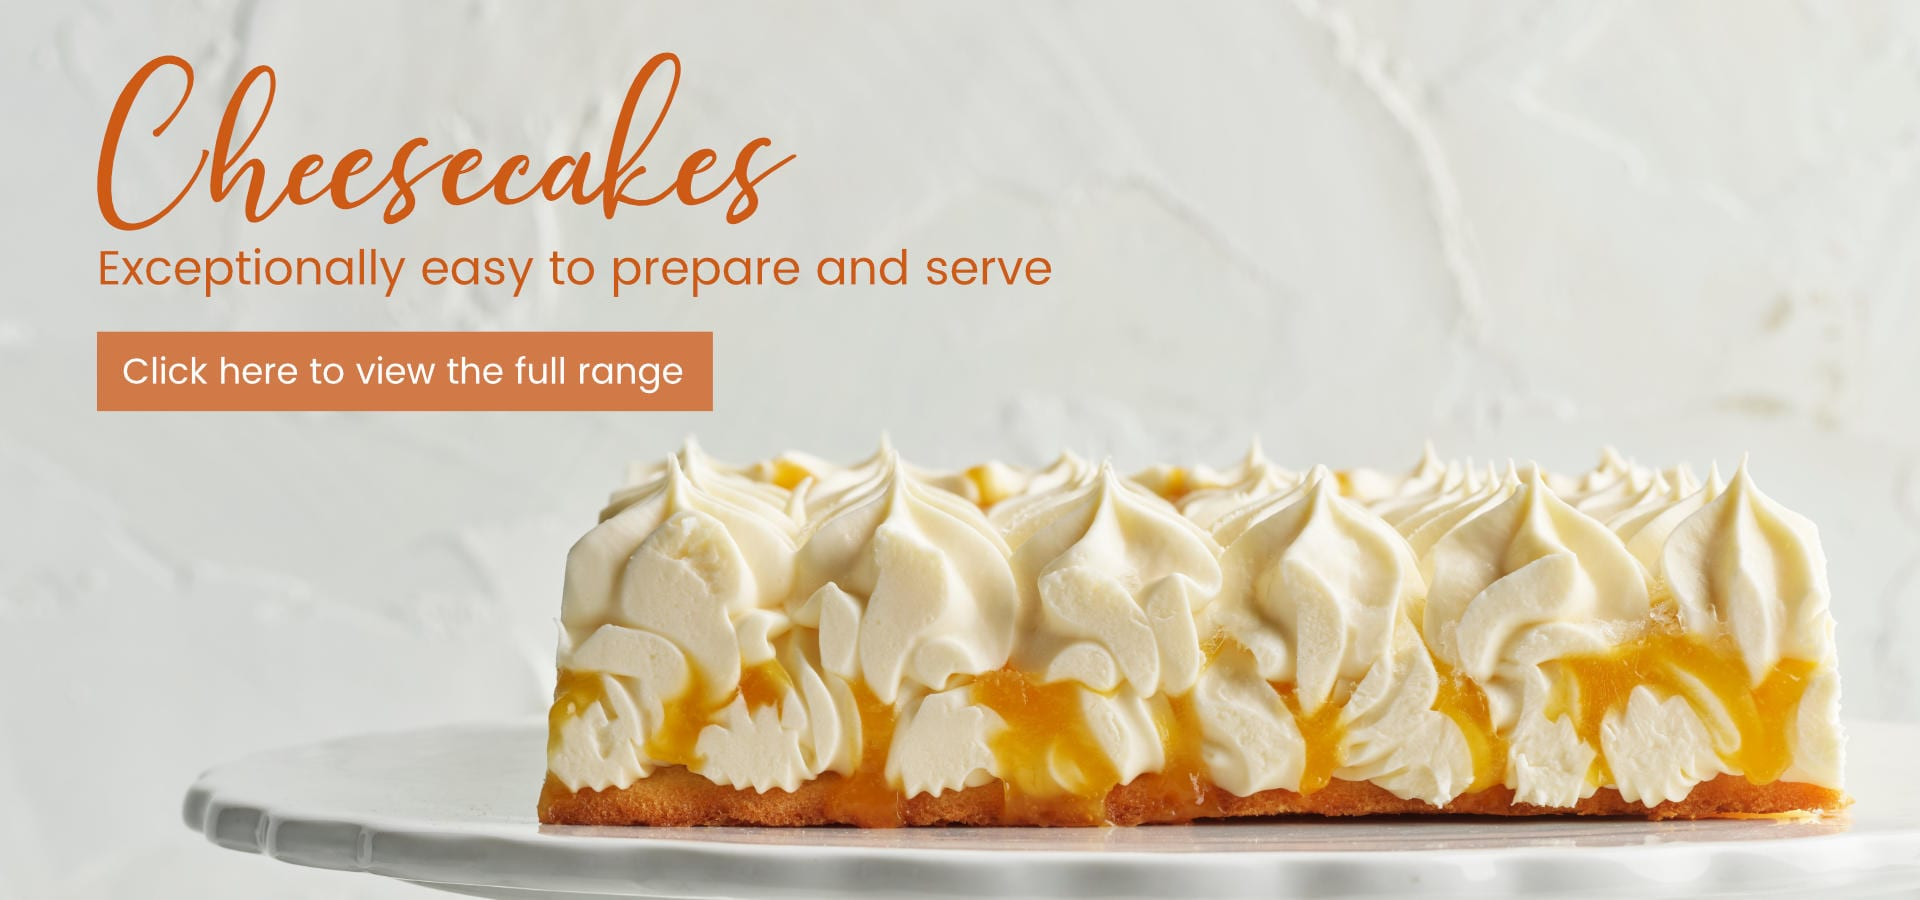 Frontpage Banner 1920x900 Cheesecakes